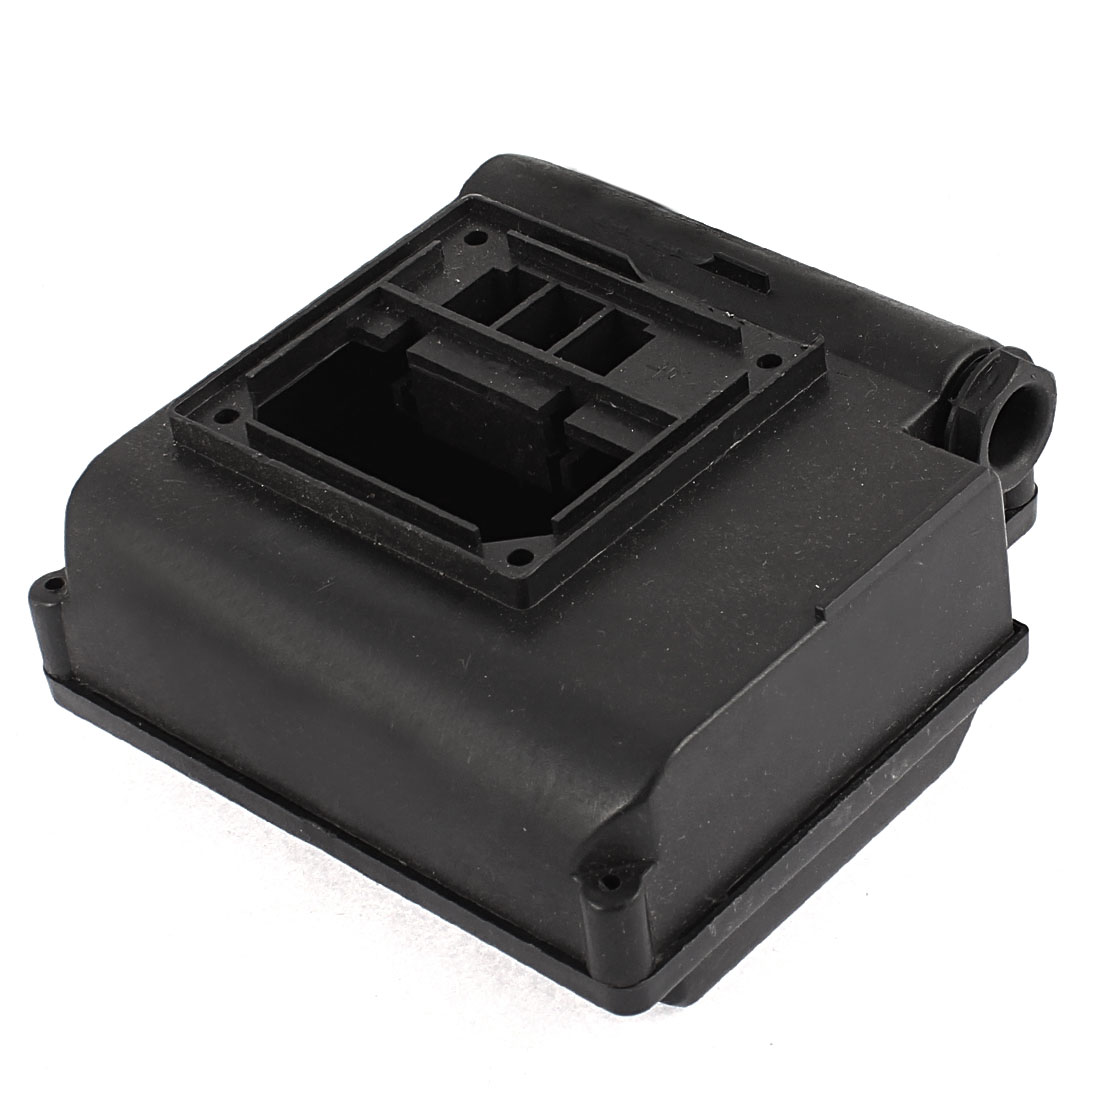 Black Plastic Shell Capacitor Protector Junction Box 125mm x 130mm